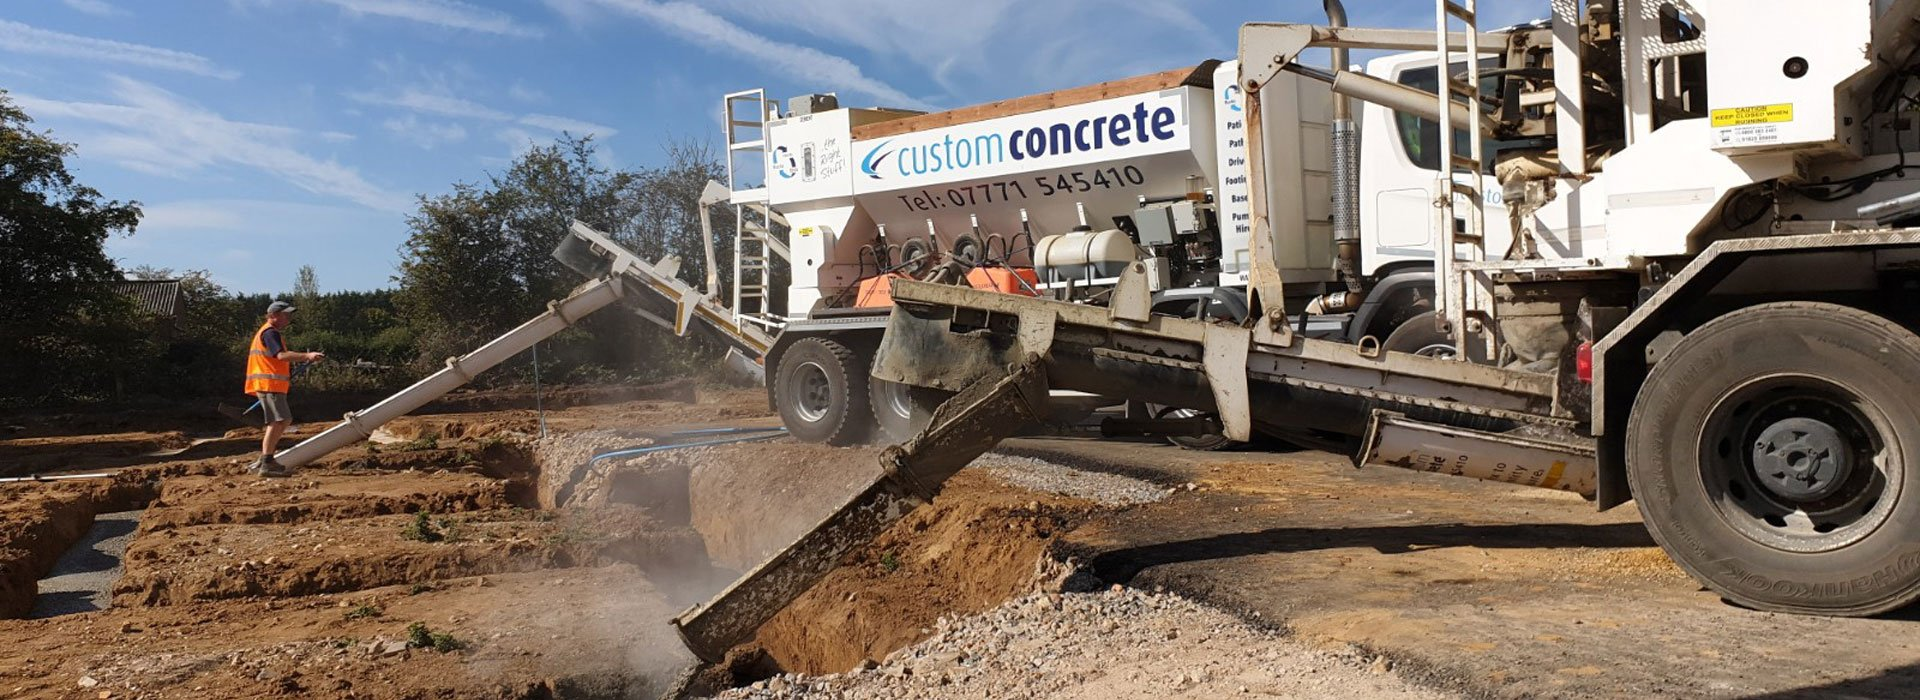 Site Mixed Concrete